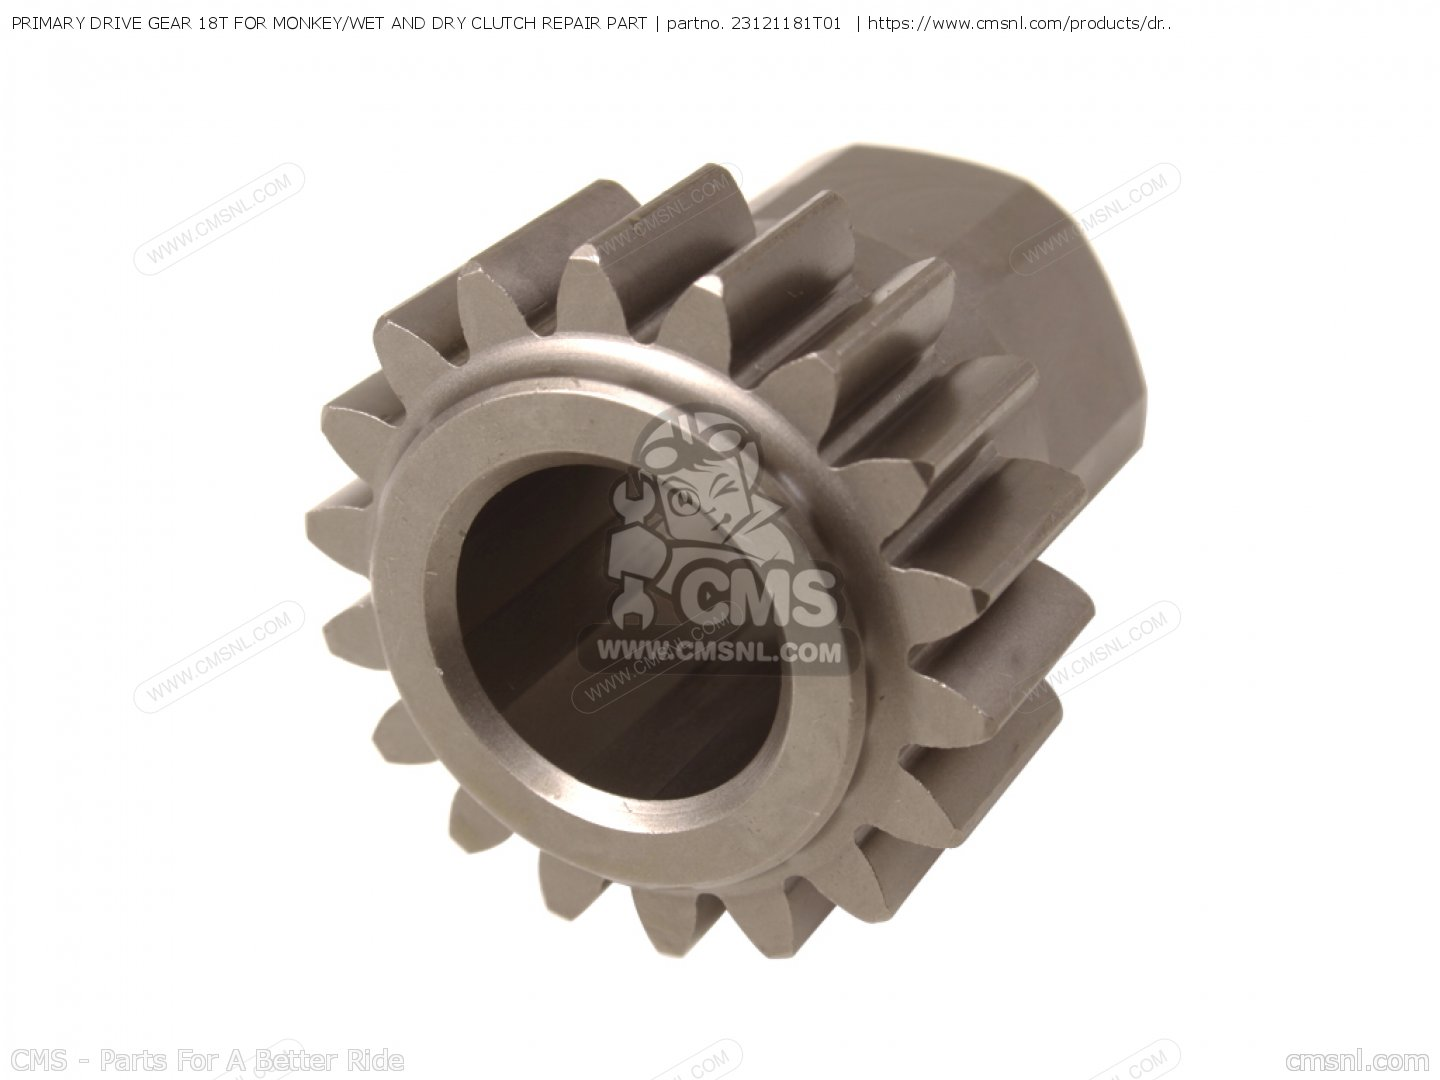 PRIMARY DRIVE GEAR 18T FOR MONKEY/WET AND DRY CLUTCH REPAIR PART